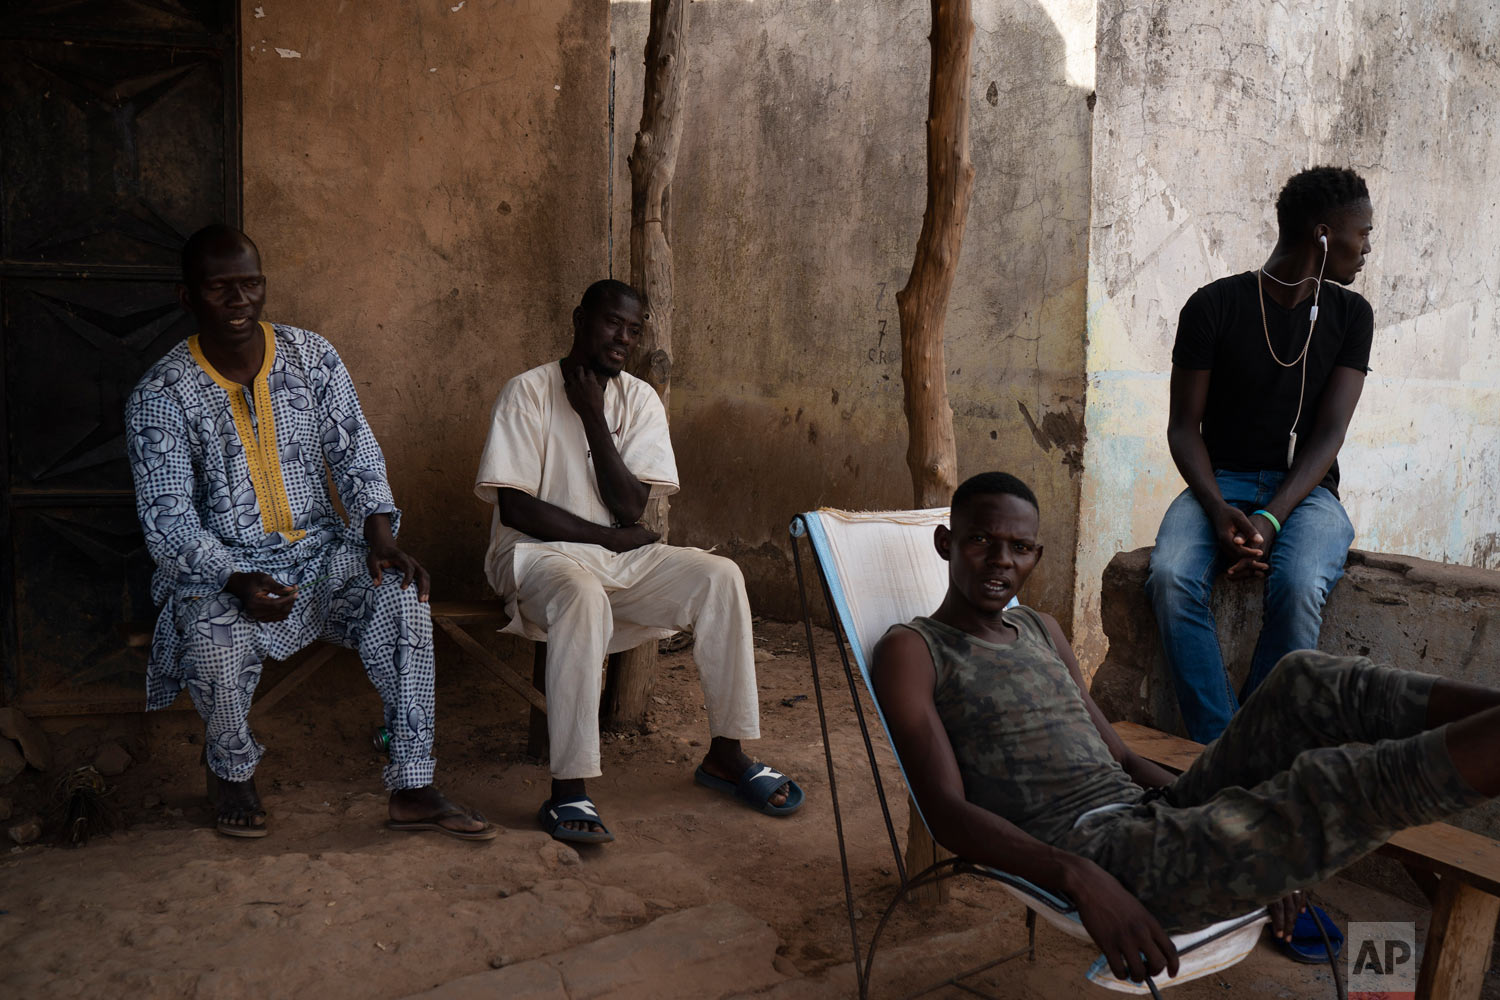 People sit outside in the shade in a village on Nov. 24, 2018, near Goudiry, Senegal. (AP Photo/Felipe Dana)